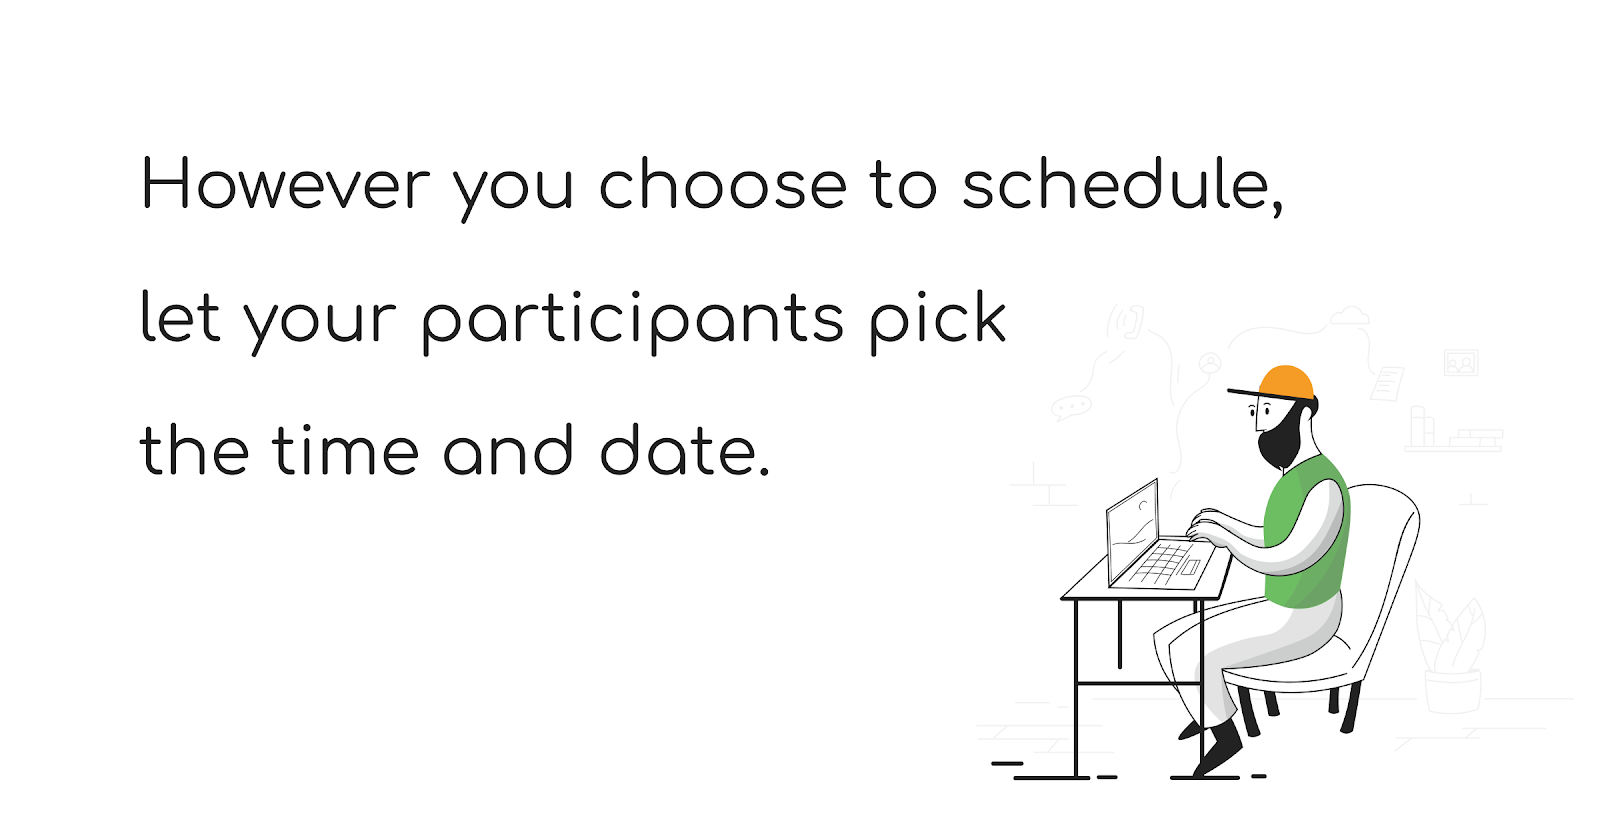 However you choose to schedule, let your participants pick the time and date - The Total Guide to User Research Recruiting - User Interviews